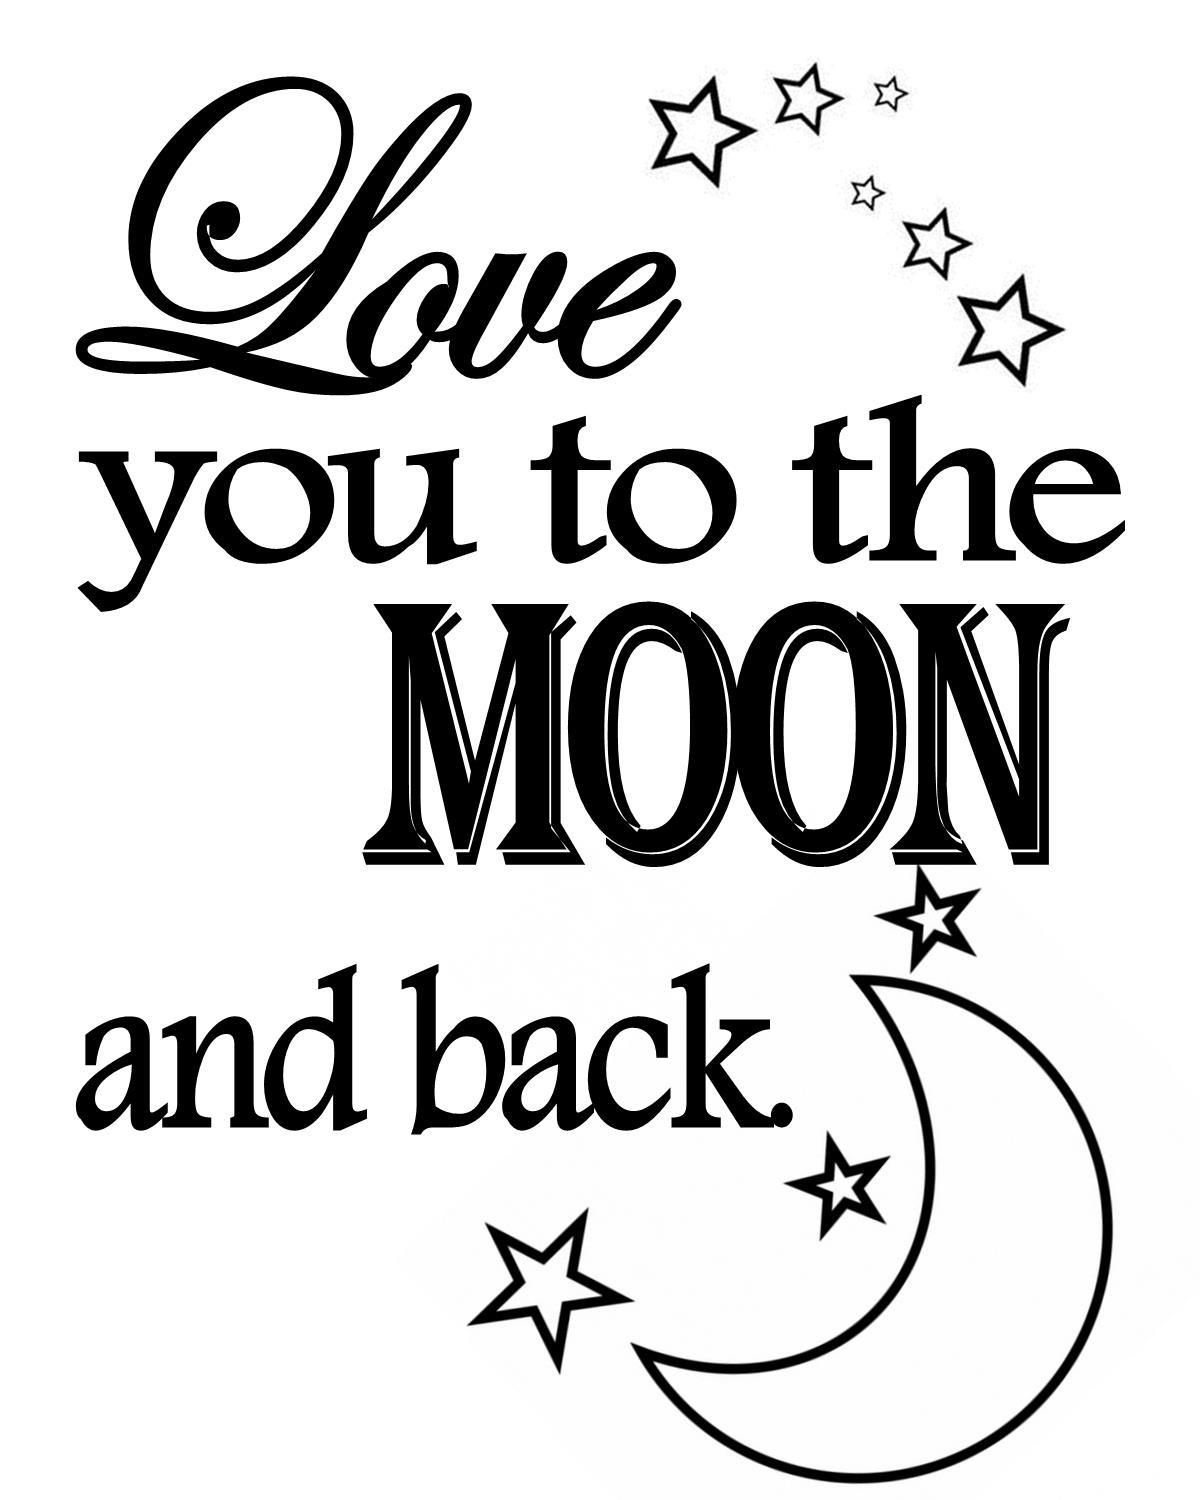 Pinjulie Glenn-Seely On Black And White Printables | Templates - Free Printable Love You To The Moon And Back